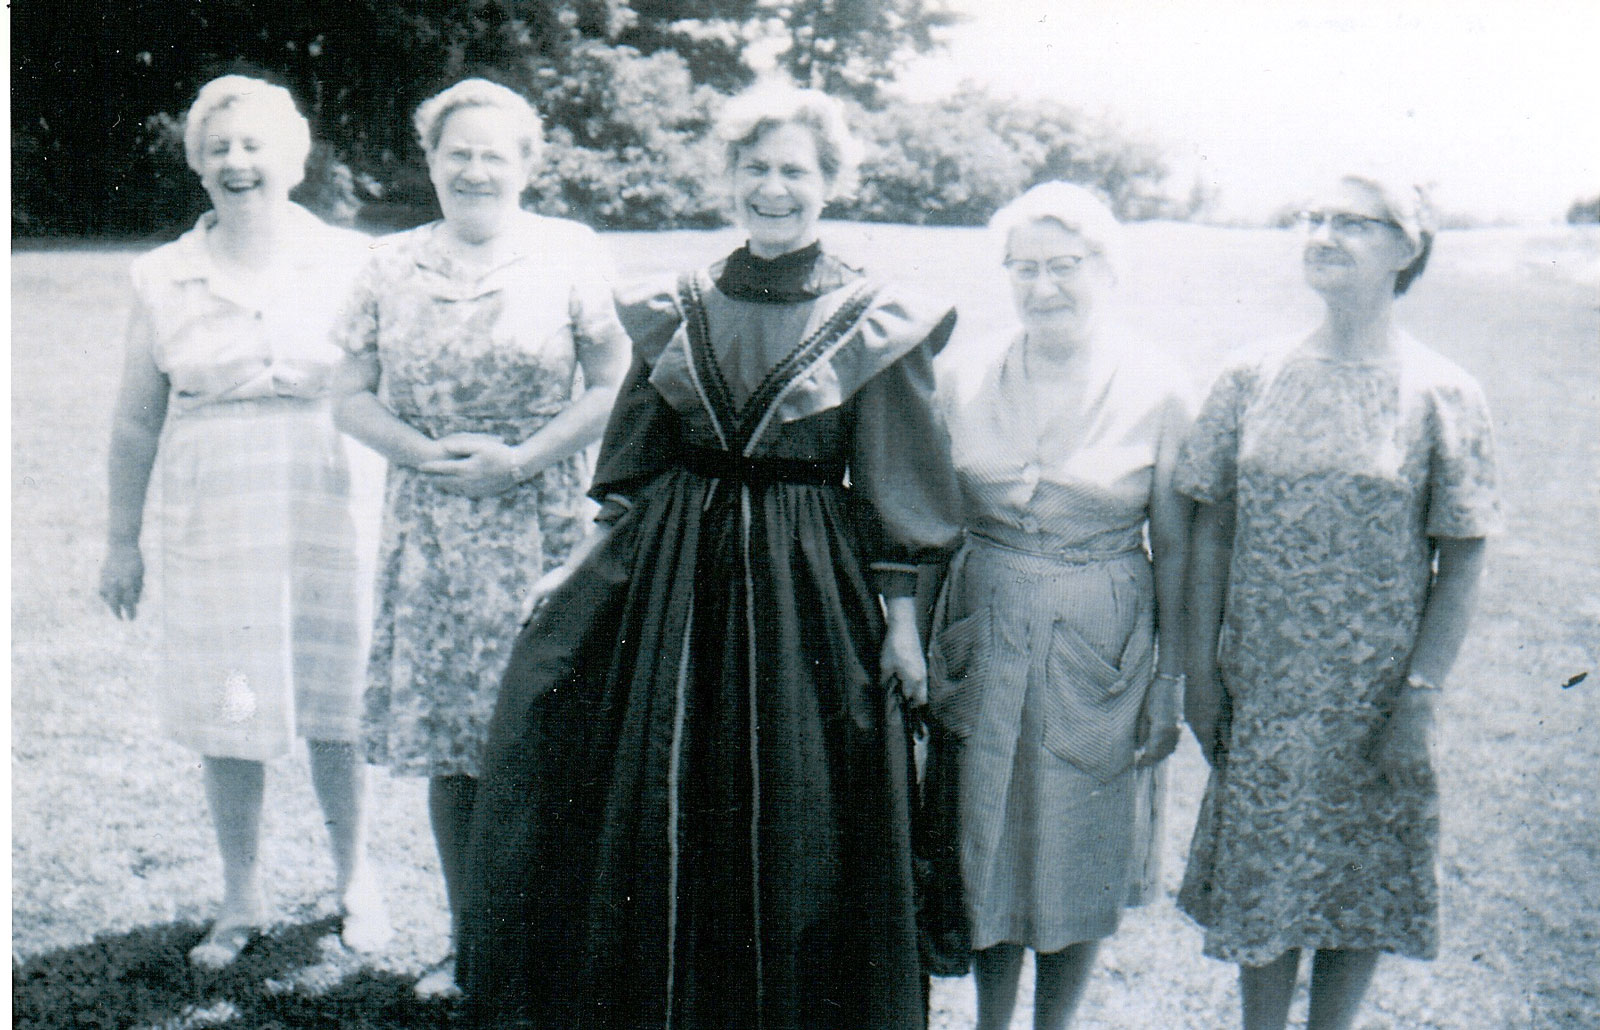 The Beley Sisters - Lucy, Marjory, Amy, Lillie, & Ethel - in 1967. The woman in the middle wears a Centennial gown. Courtesy the Rosseau Historical Society.